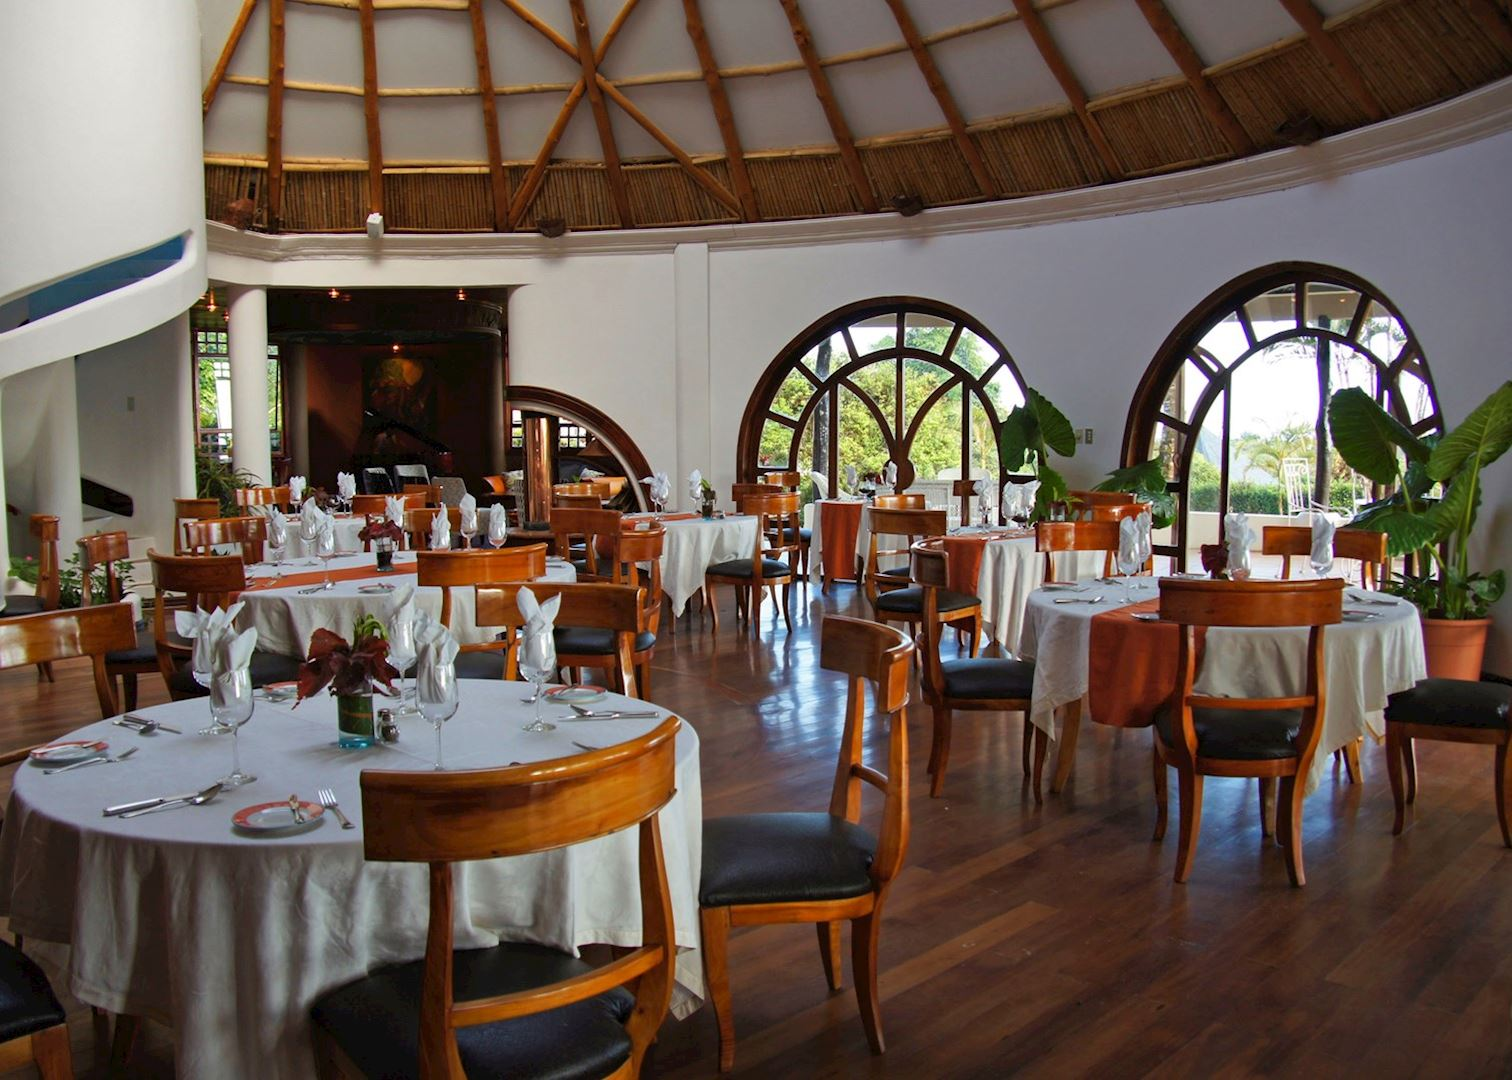 royal palm hotel the galapagos islands audley travel. Black Bedroom Furniture Sets. Home Design Ideas